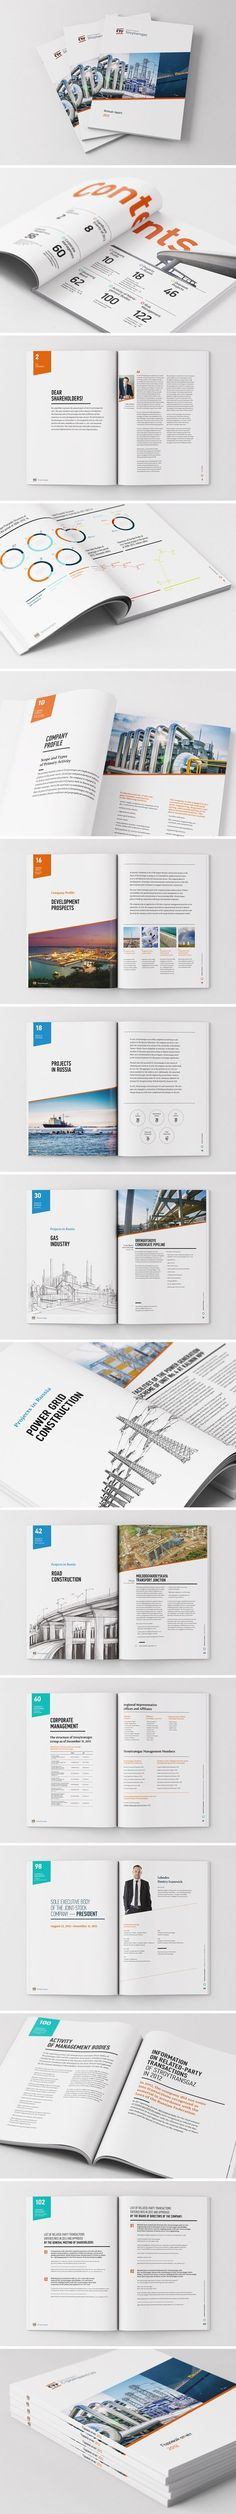 Stroytransgaz annual report by Praxis Advance, via Behance